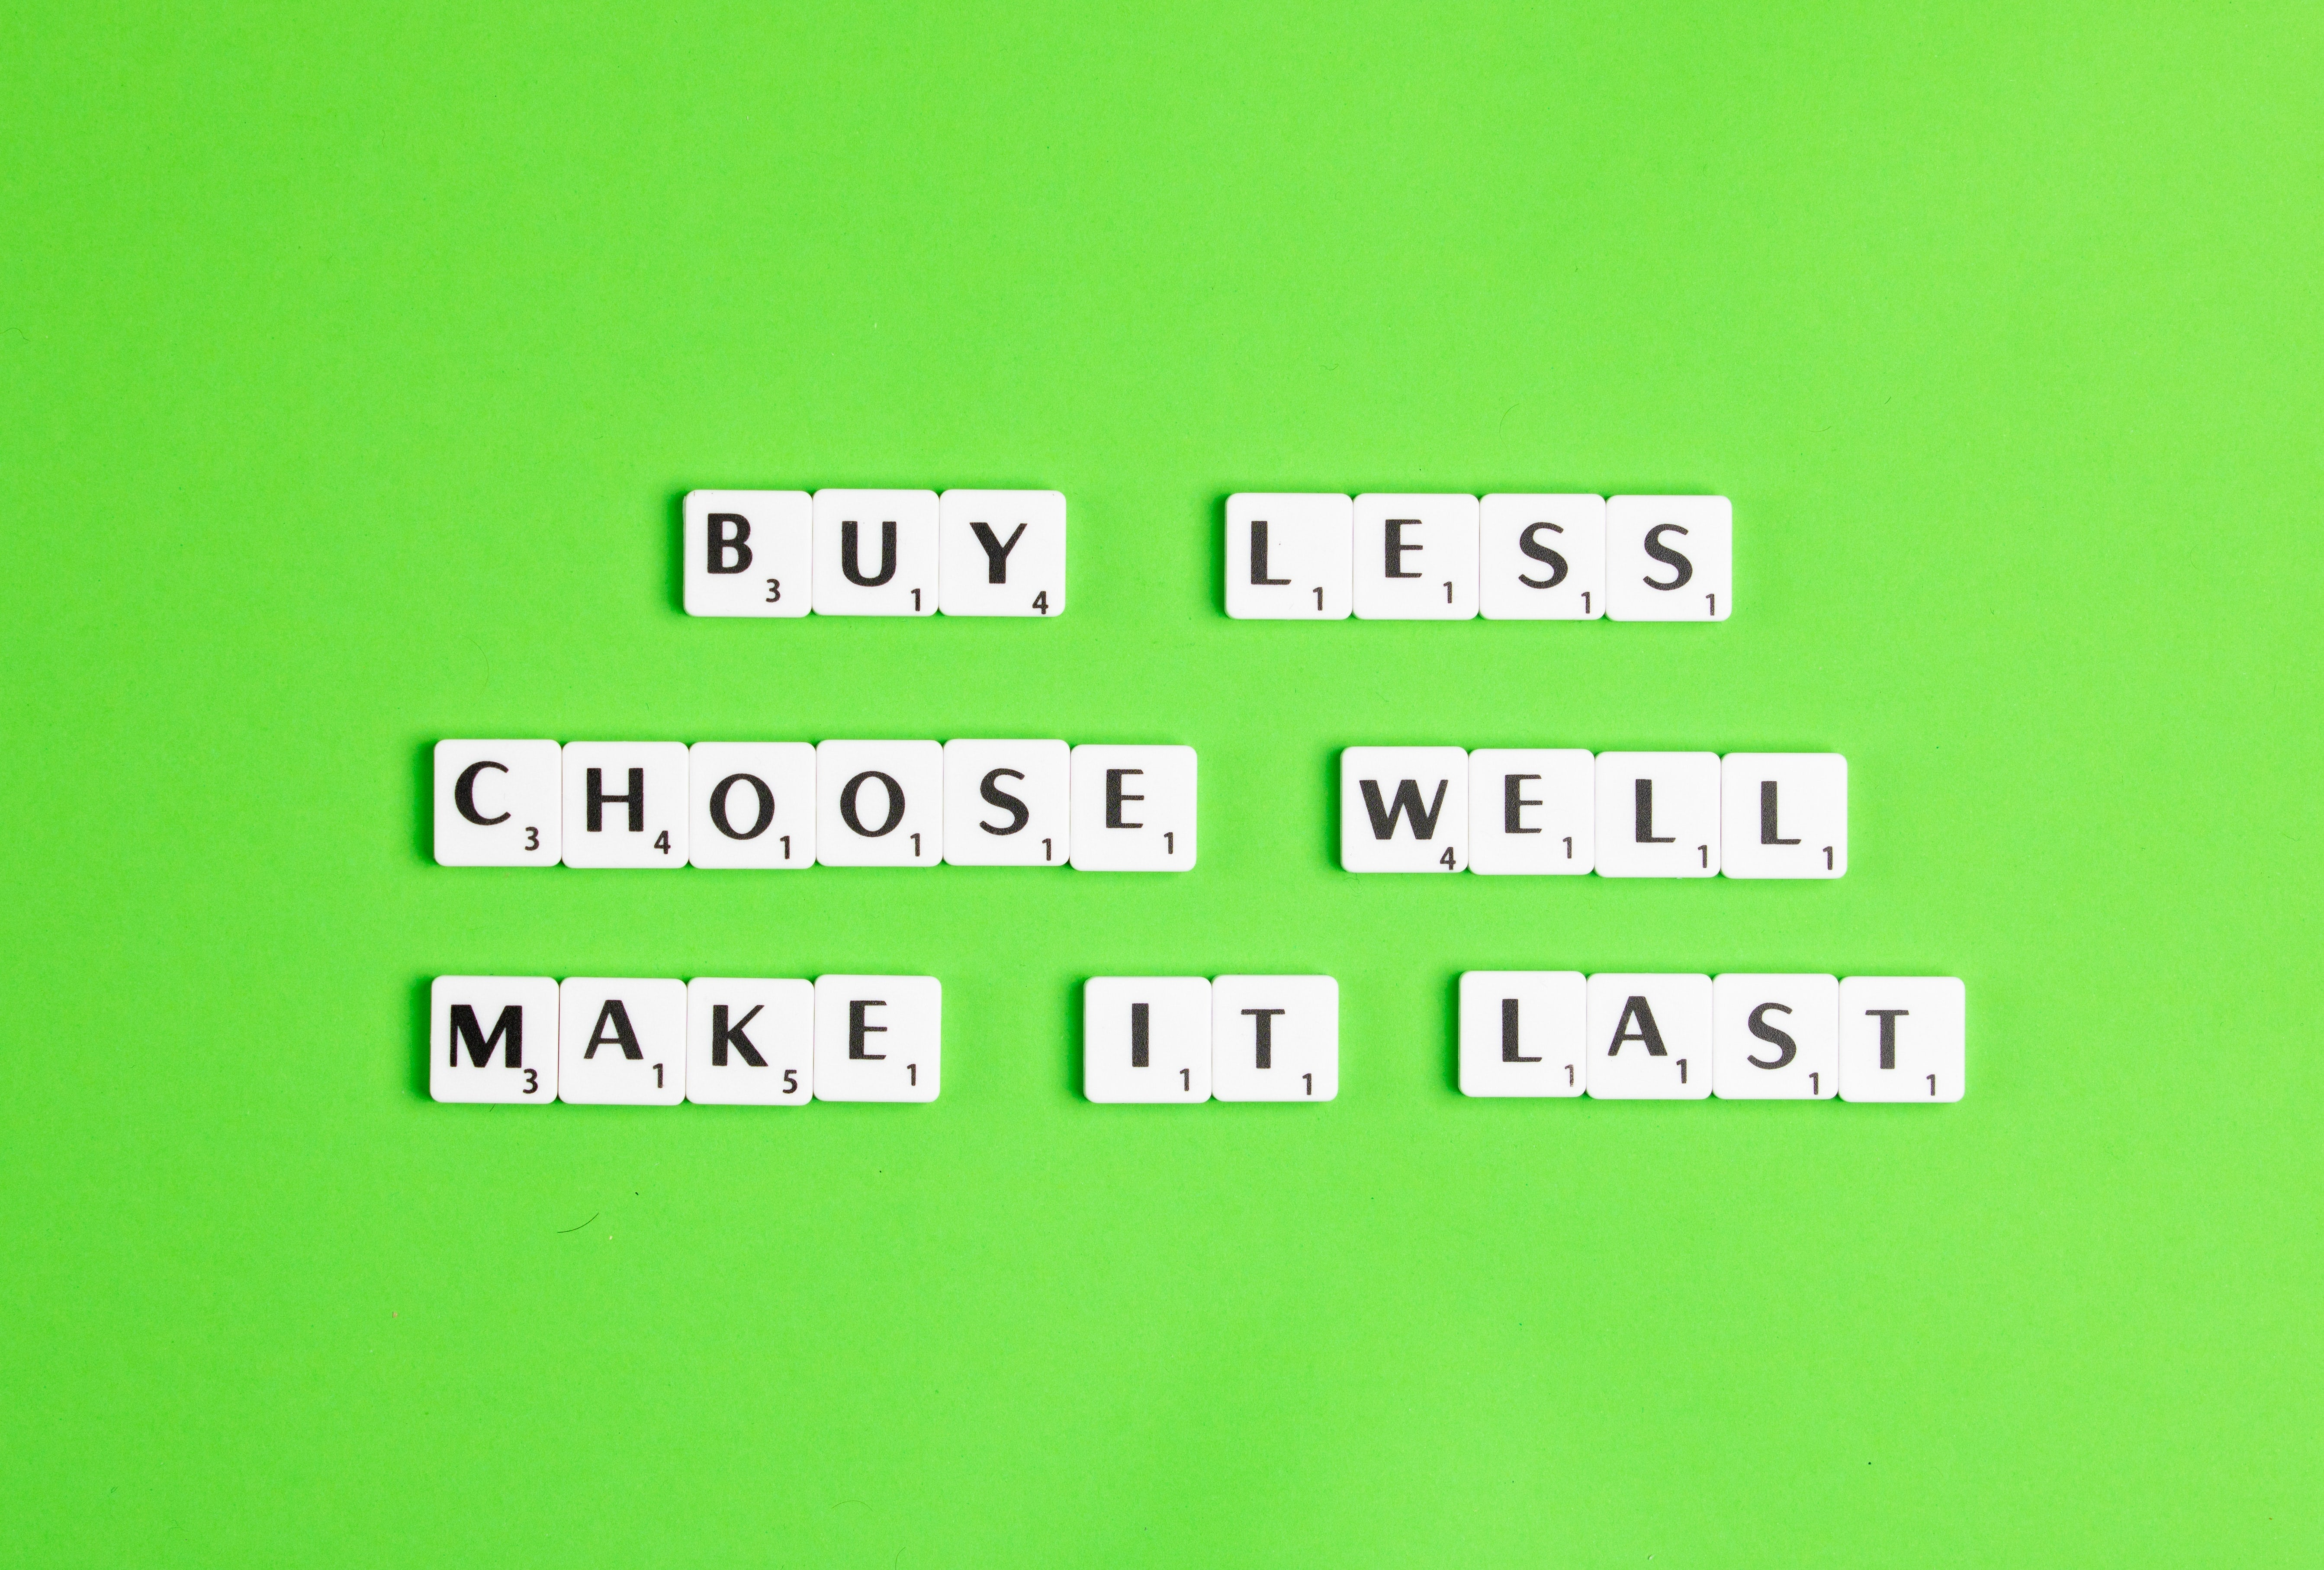 Buy less, choose well, make it last - Graphic